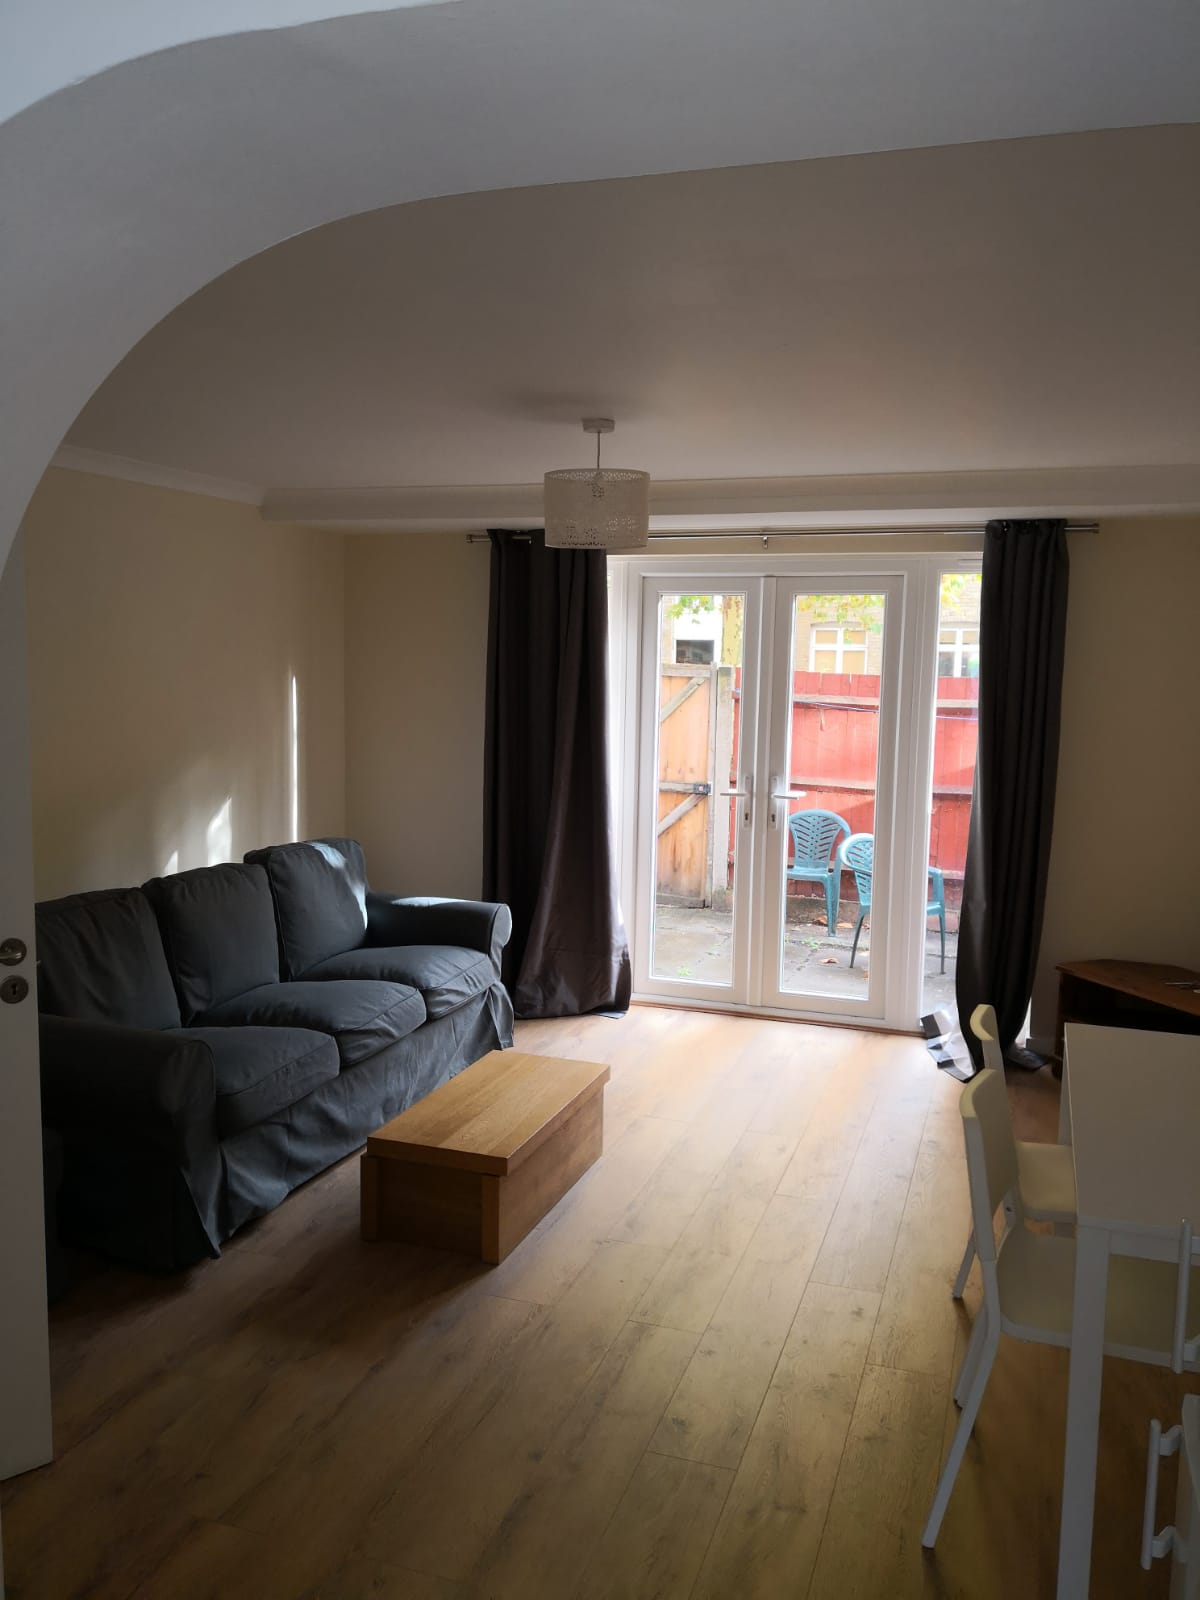 1 room in Bow, London, E3 2TR RoomsLocal image